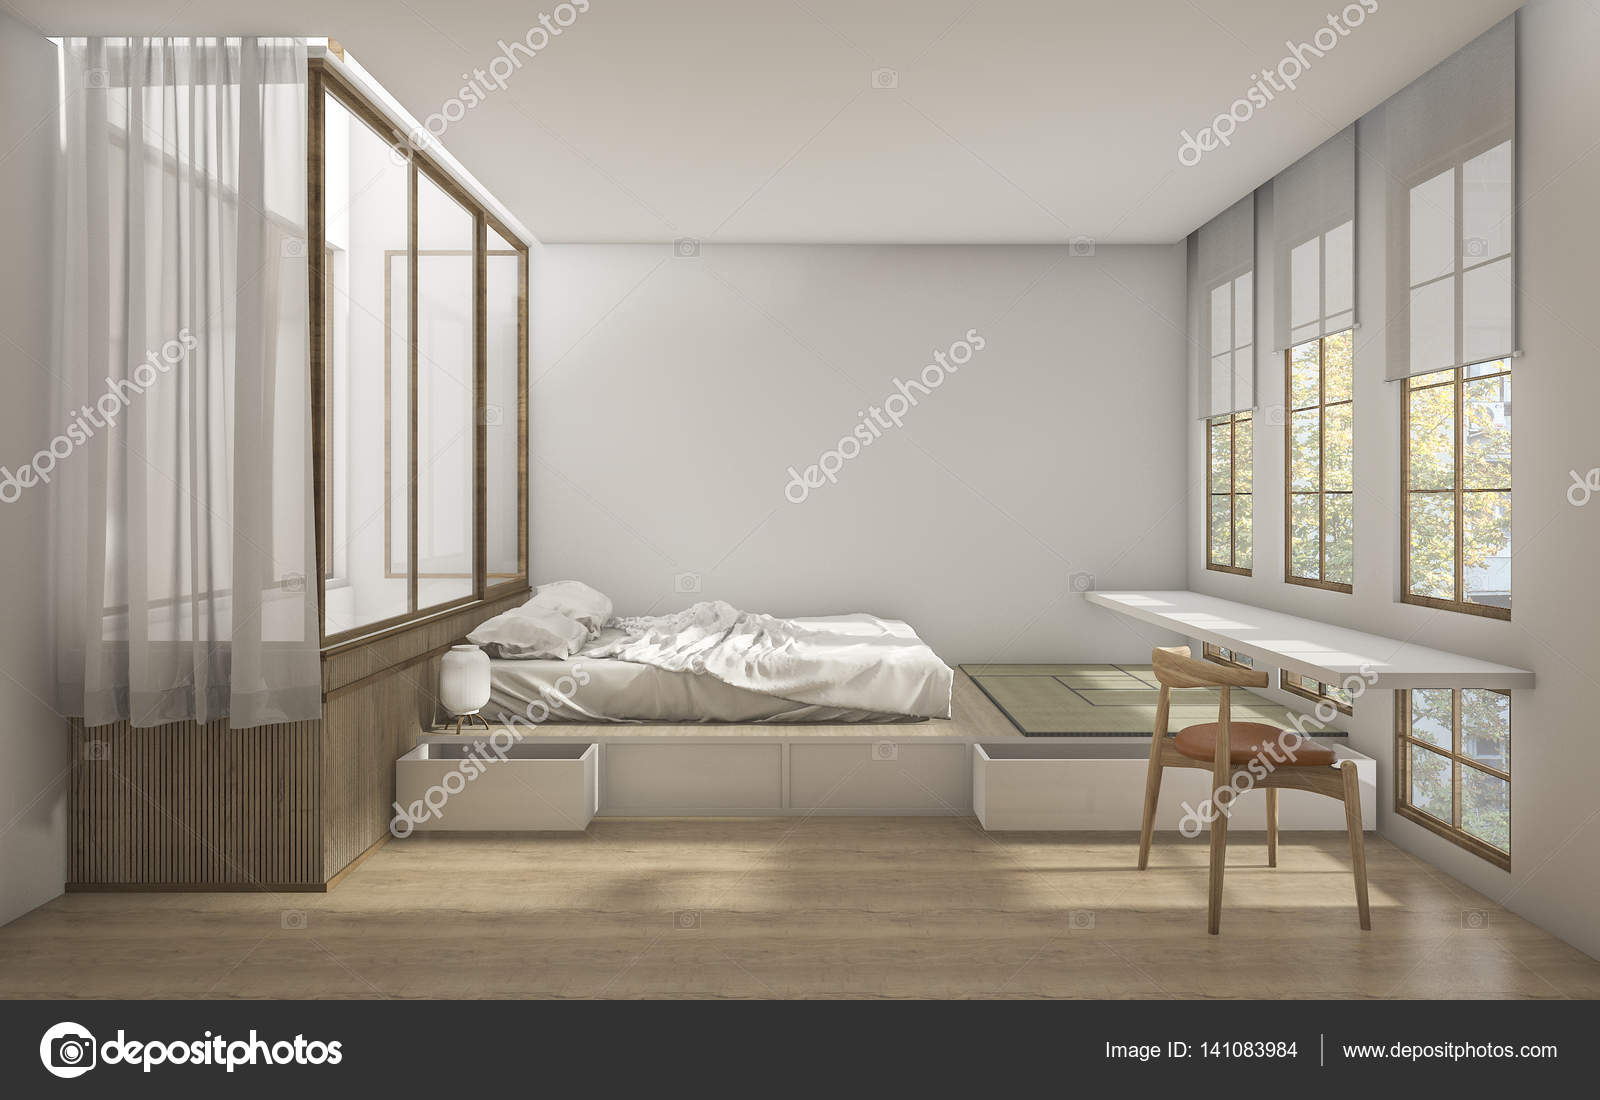 Best camera da letto stile giapponese ideas home interior ideas - Camera da letto giapponese ...